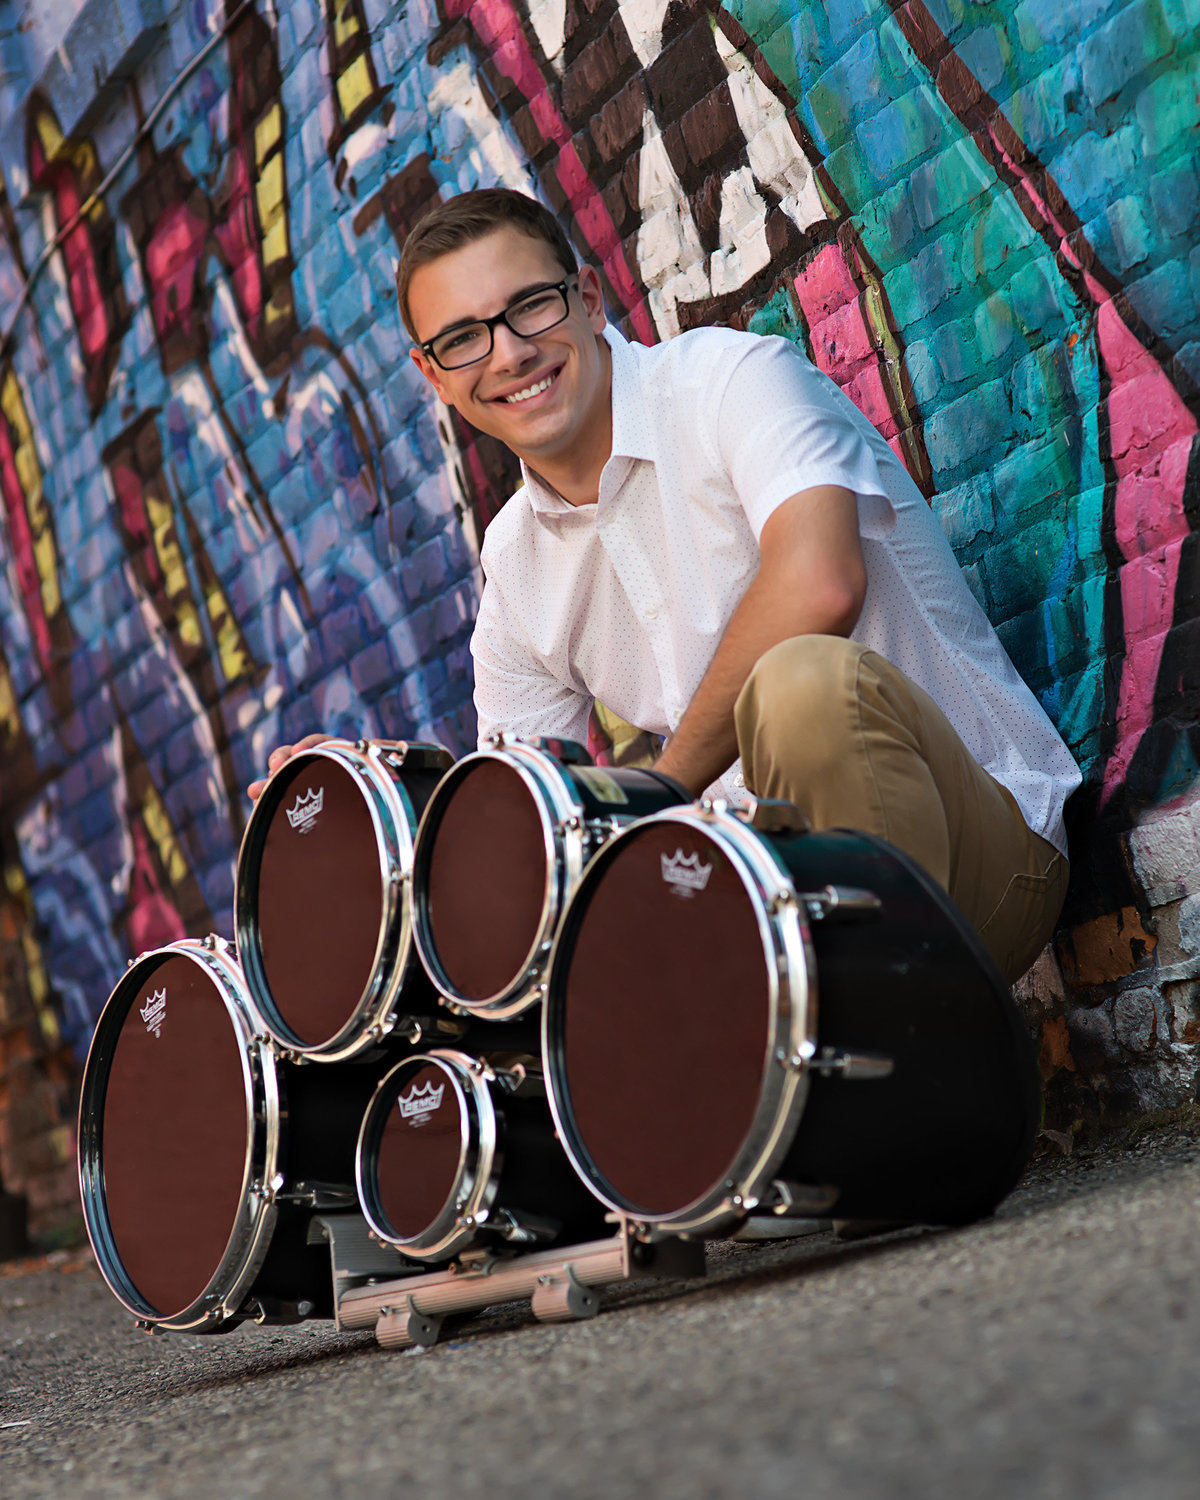 lansing michigan senior portraits of drummer